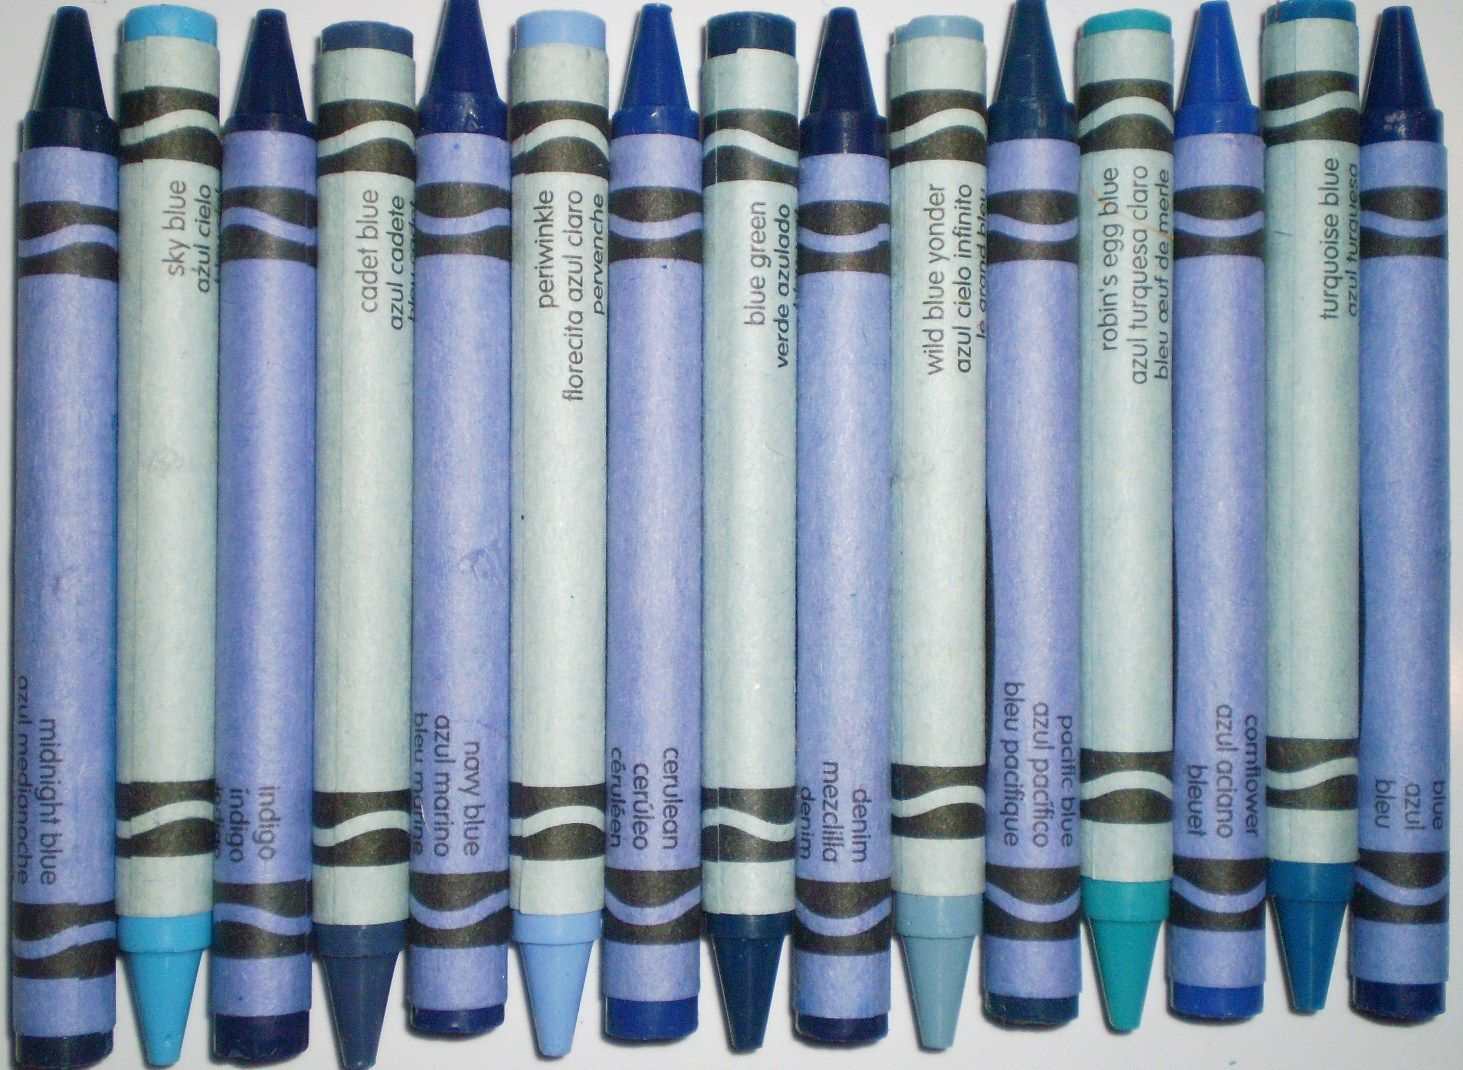 Crayola\'s Best Blue Colored Crayons - Midnight Blue, Sky Blue ...